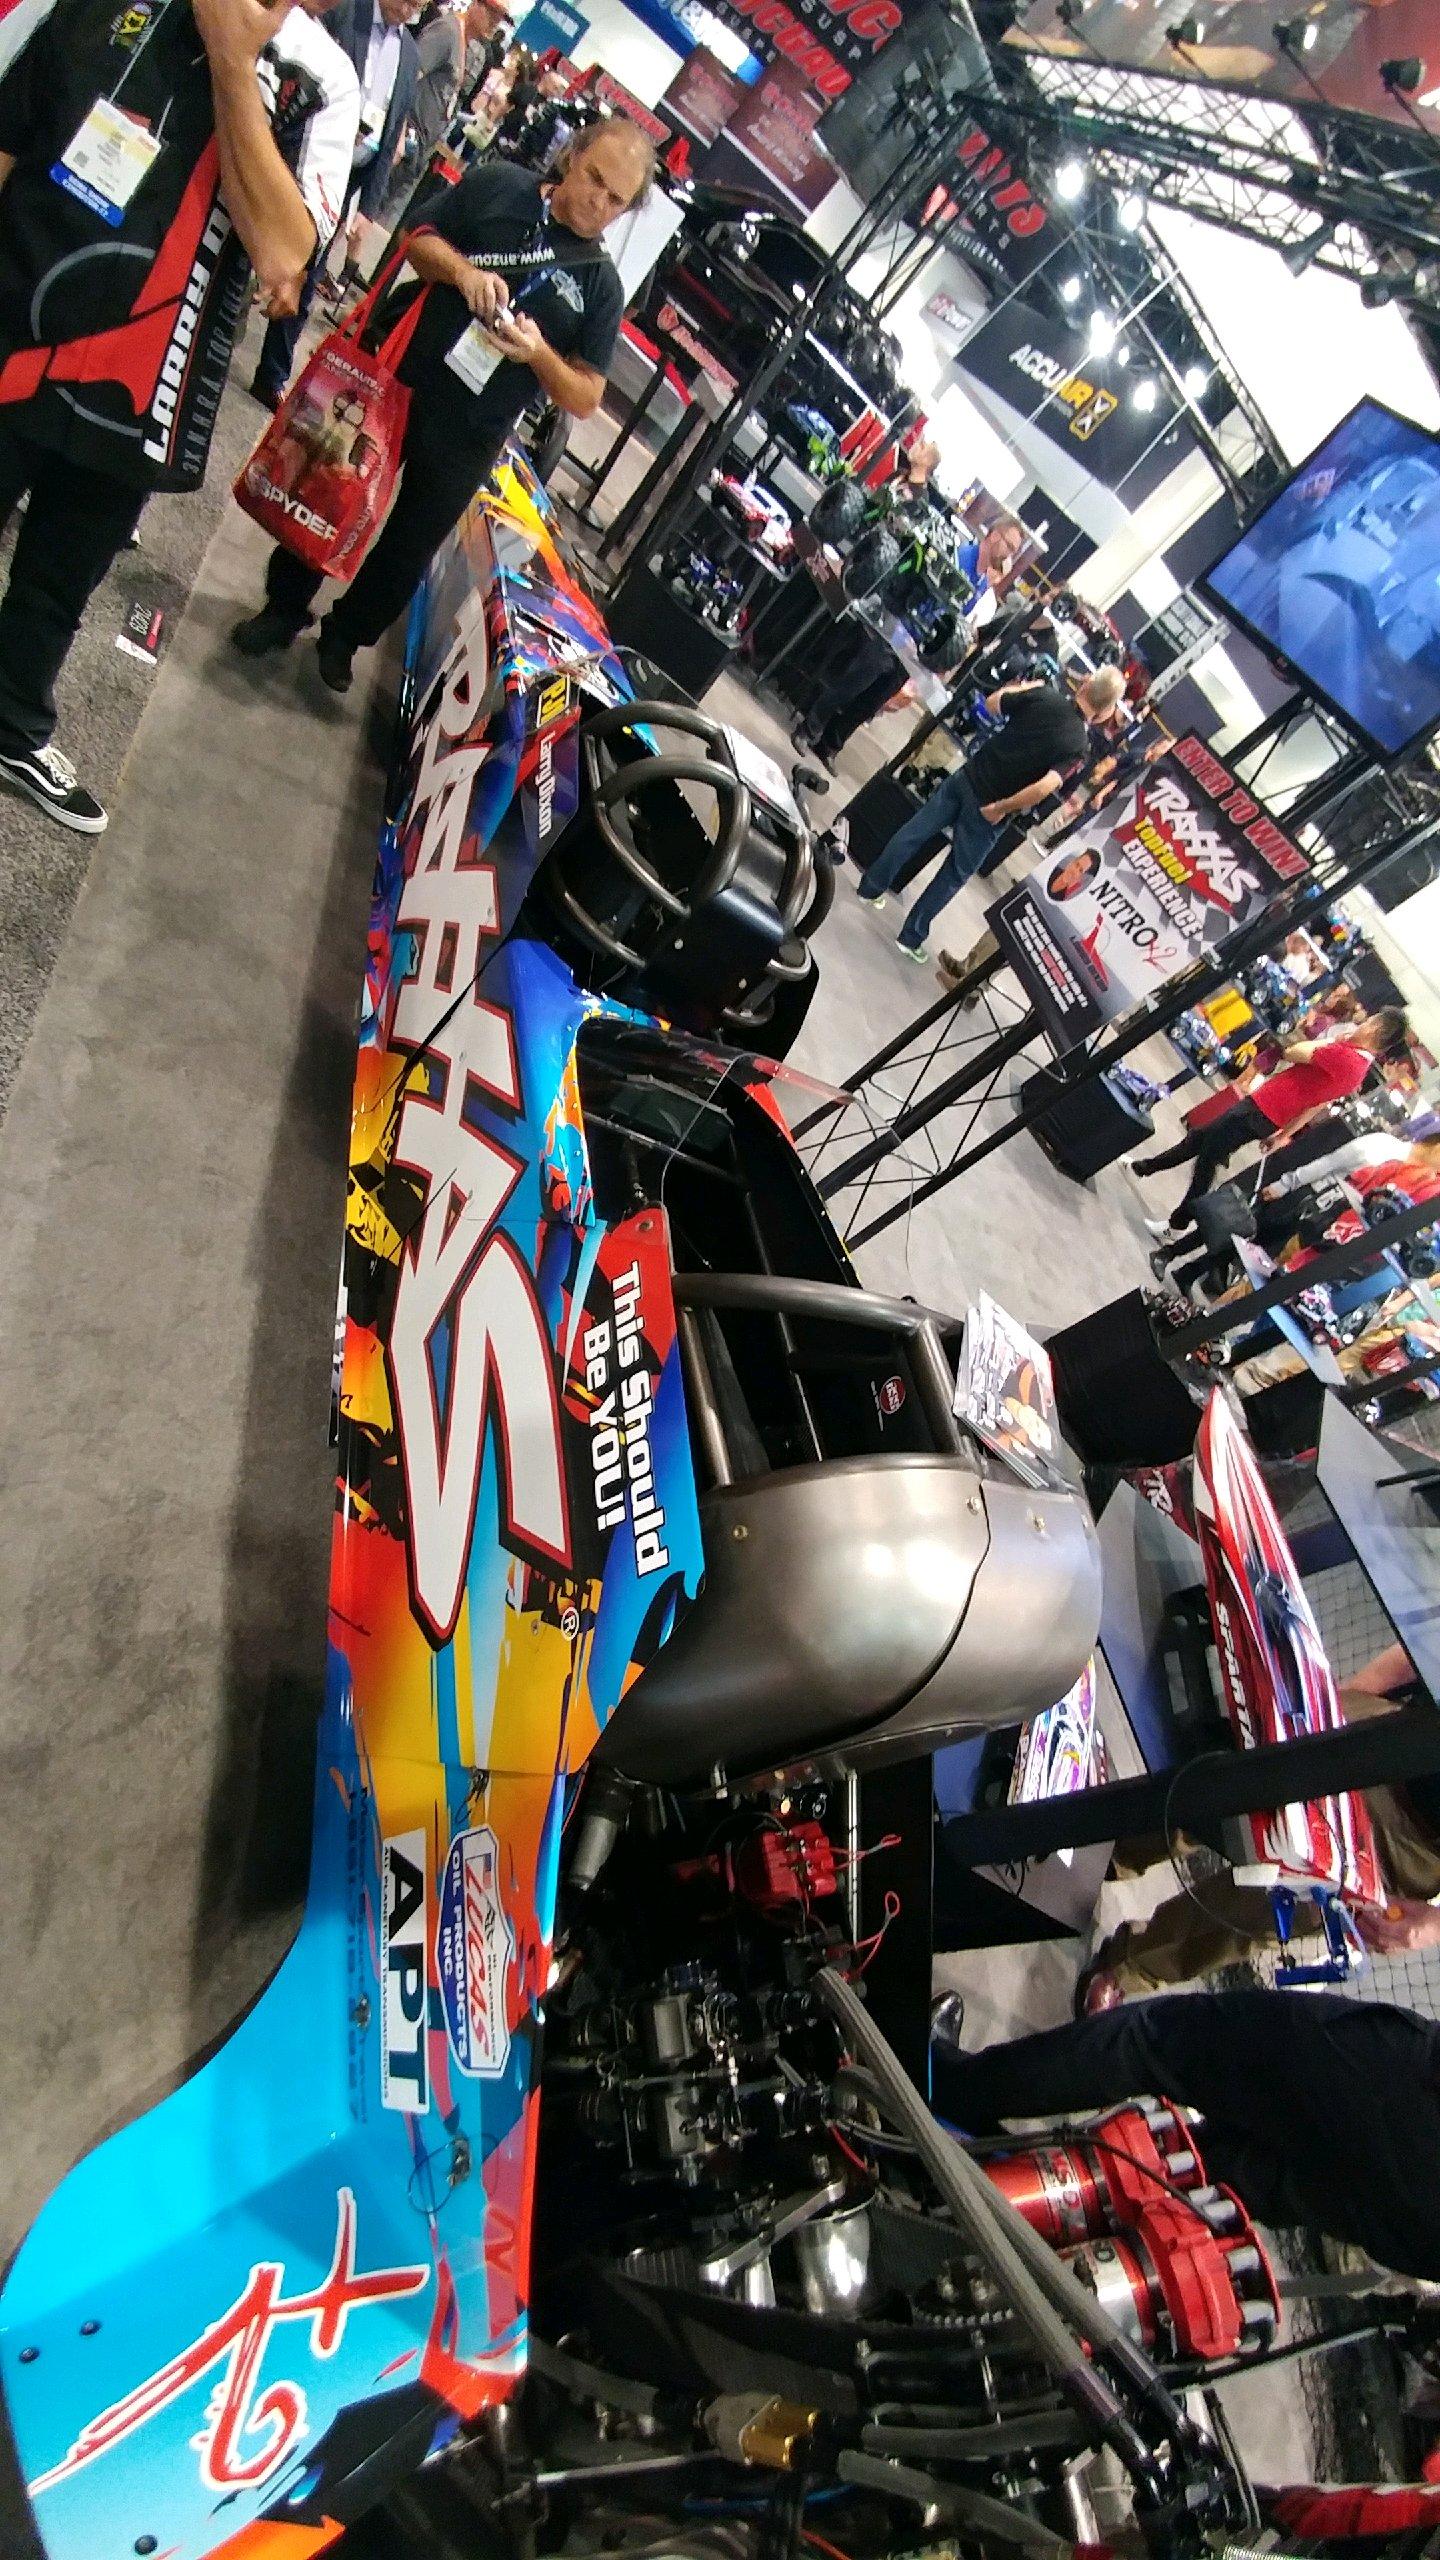 DIXON REVEALS TWO SEAT TOP FUEL DRAGSTER WITH VIDEO